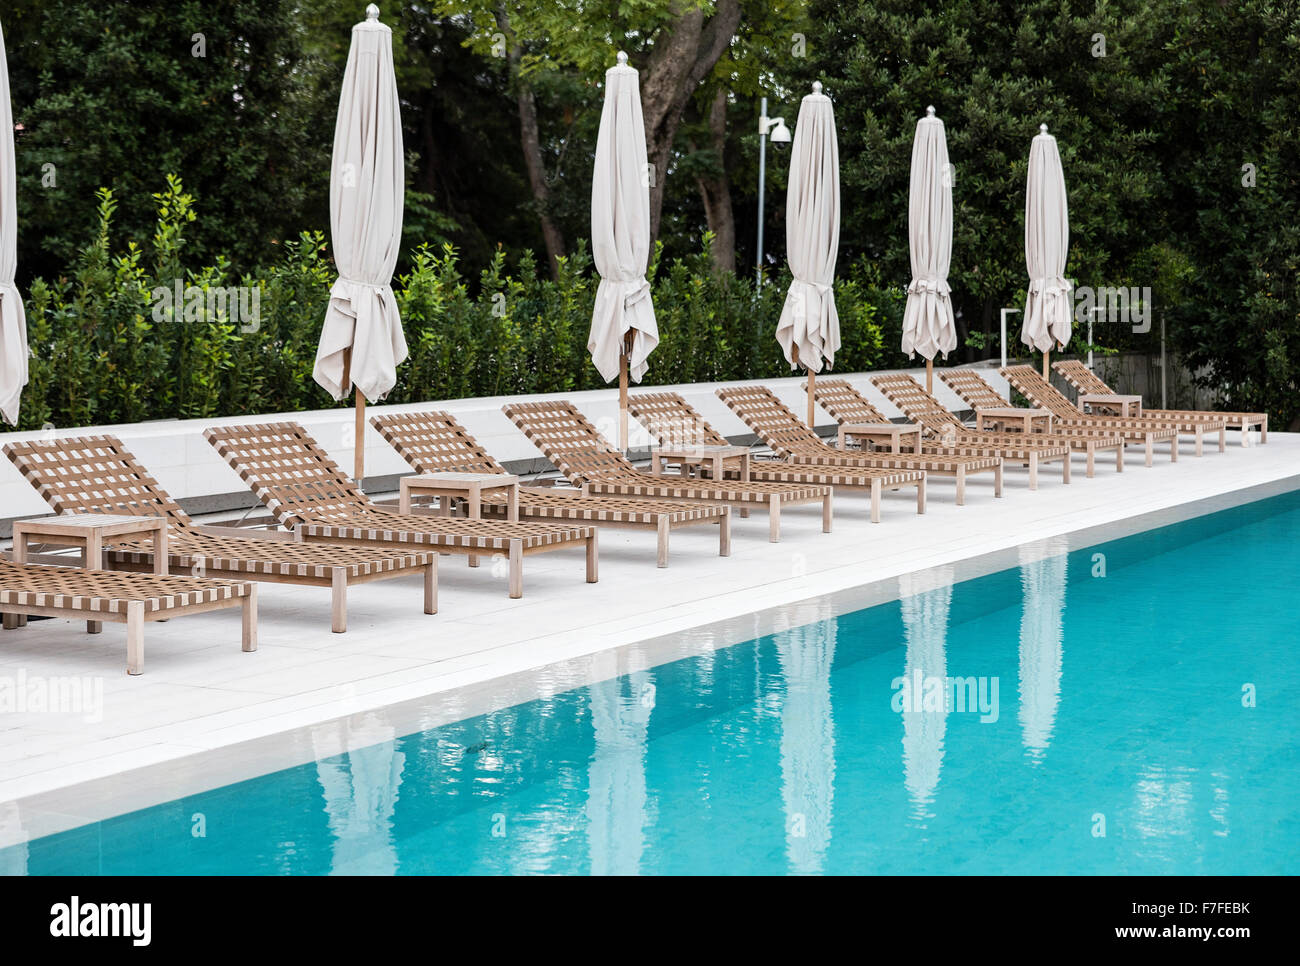 Poolside lounge chairs at an upscale pool. - Stock Image